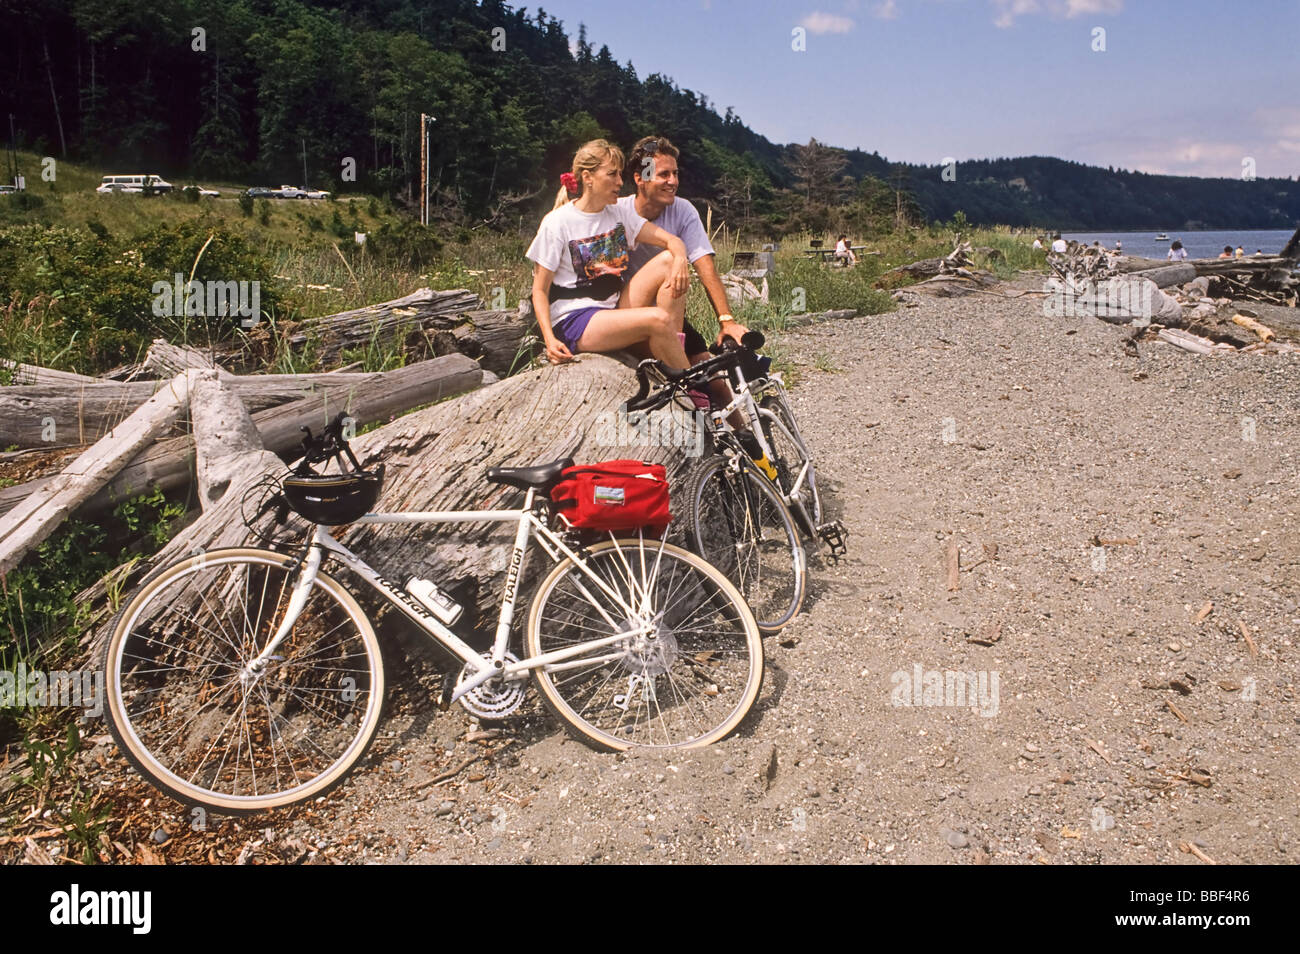 Man and woman bicycle riders take a break at Possession Point Whidbey Island WA USA - Stock Image